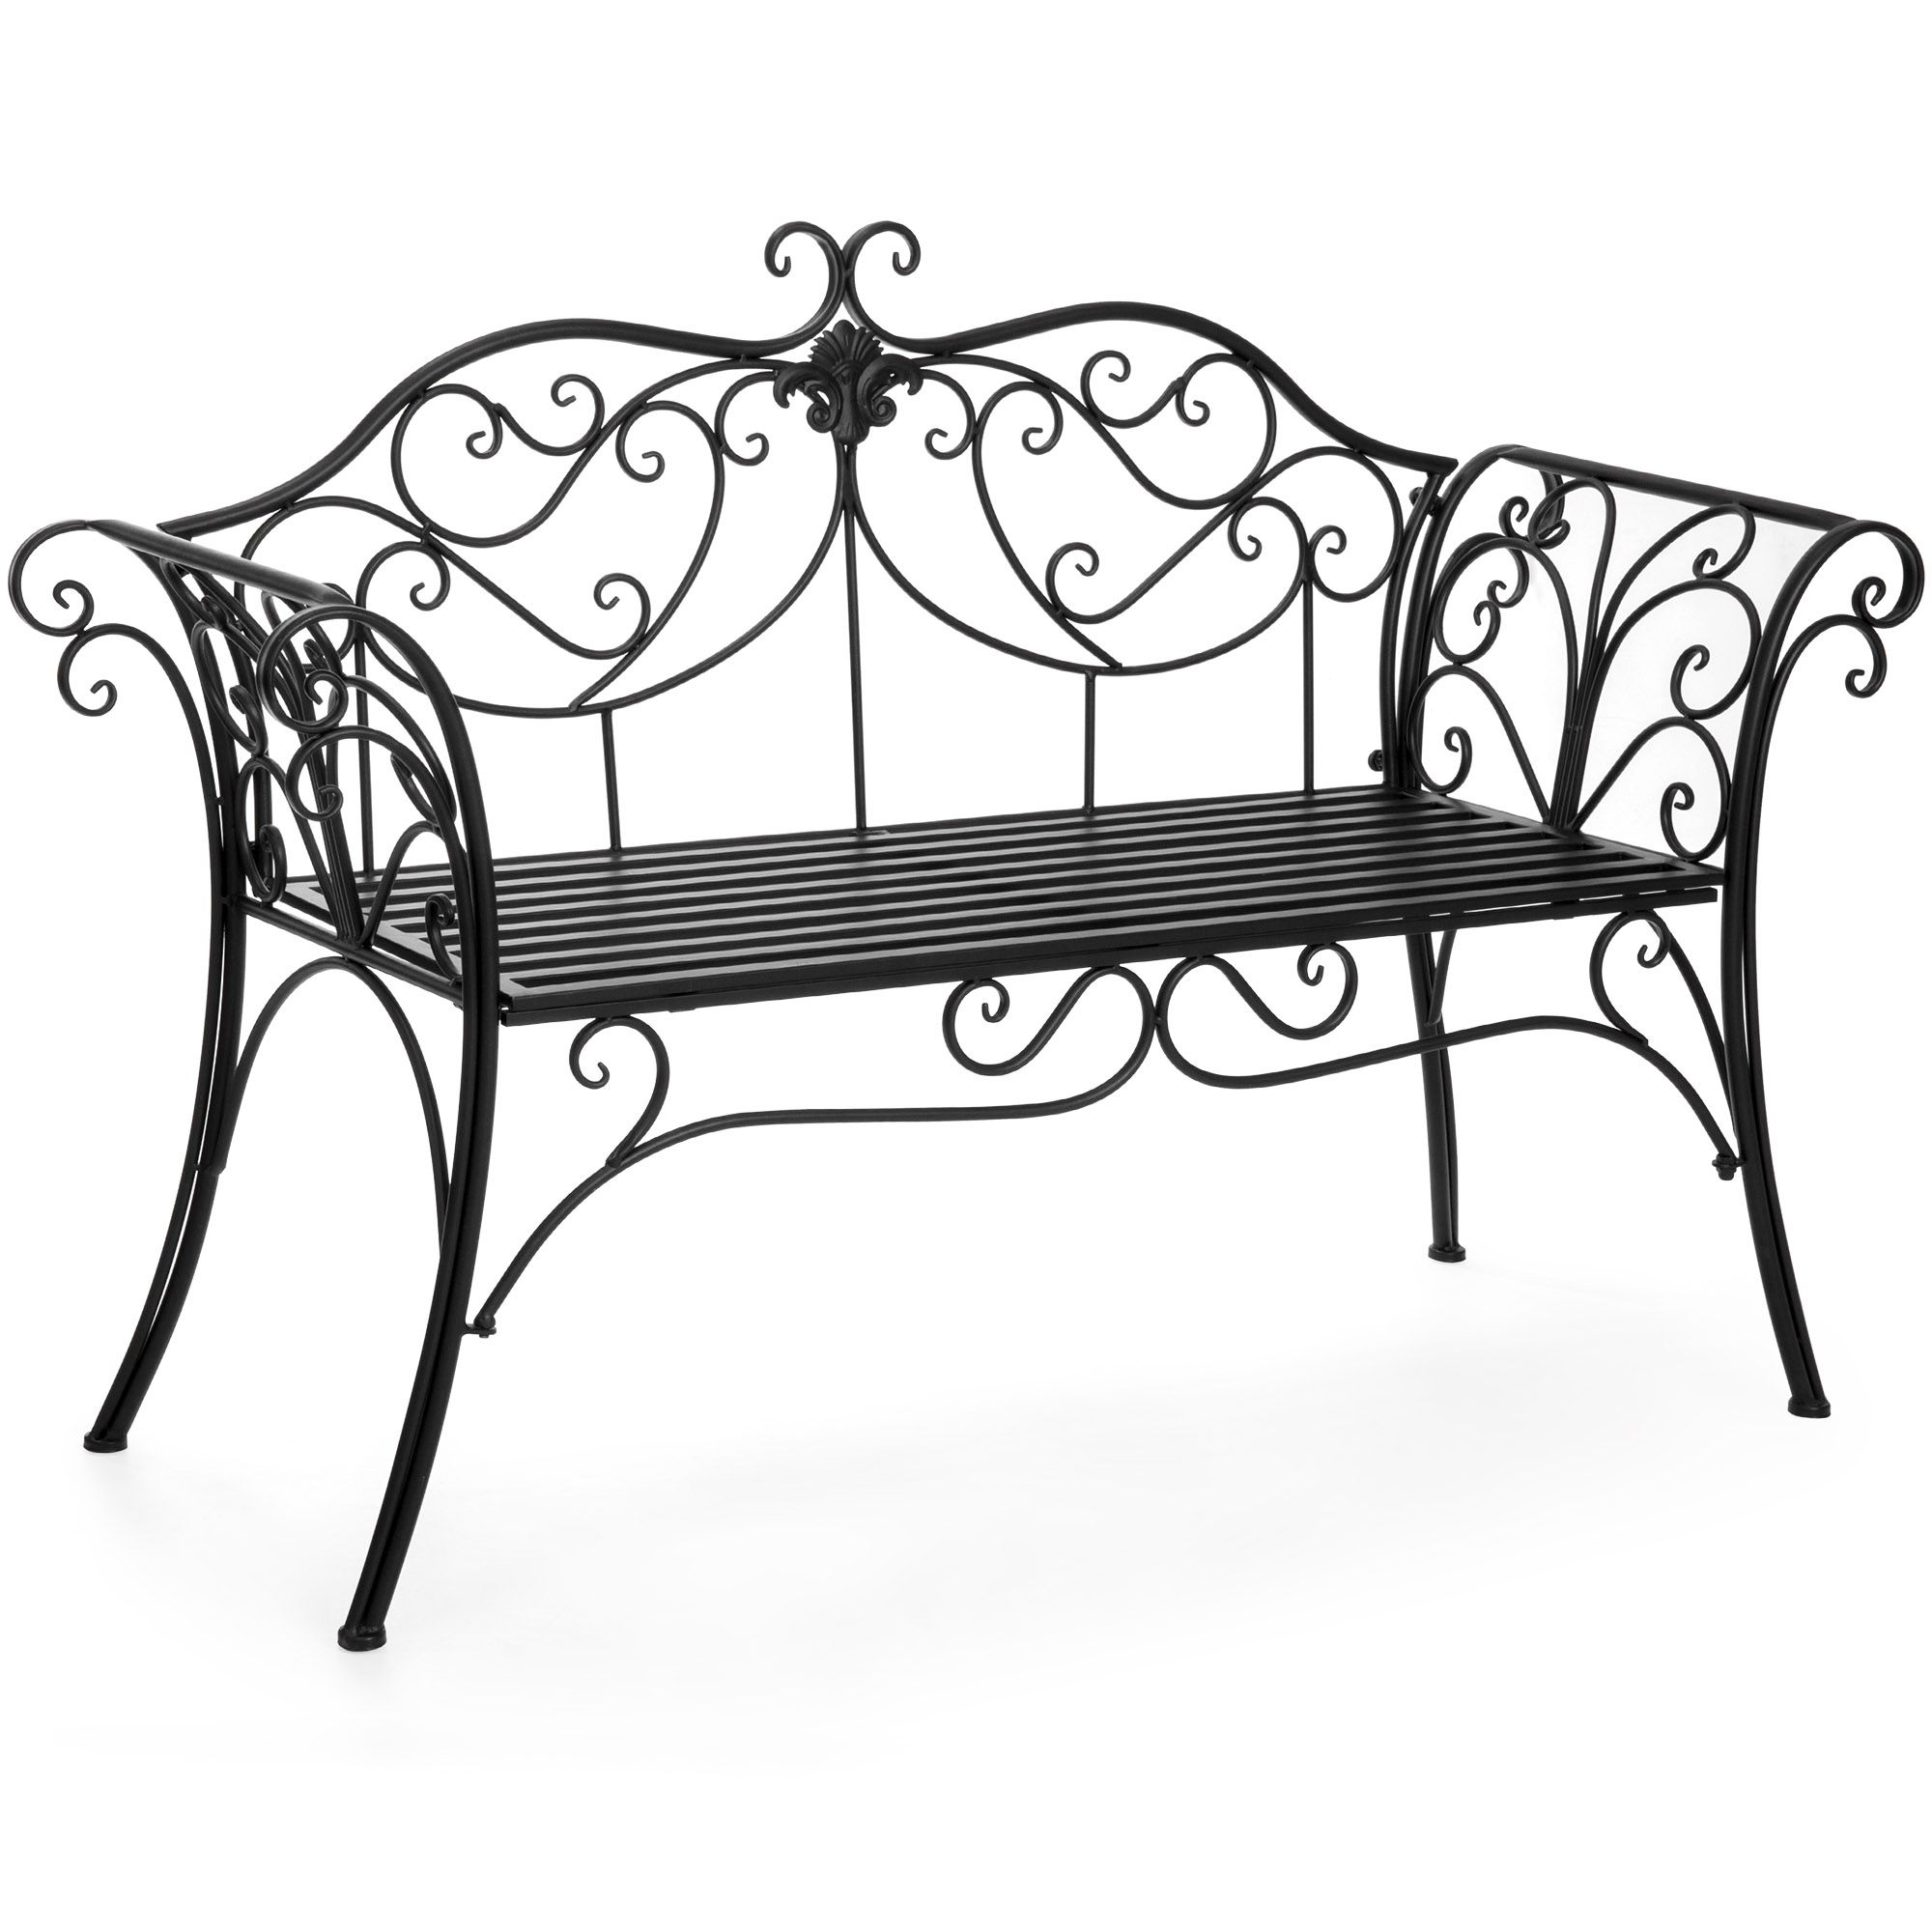 Patio & Garden | Metal Patio Furniture, Patio Furniture Sets In 2 Person Antique Black Iron Outdoor Swings (View 3 of 25)